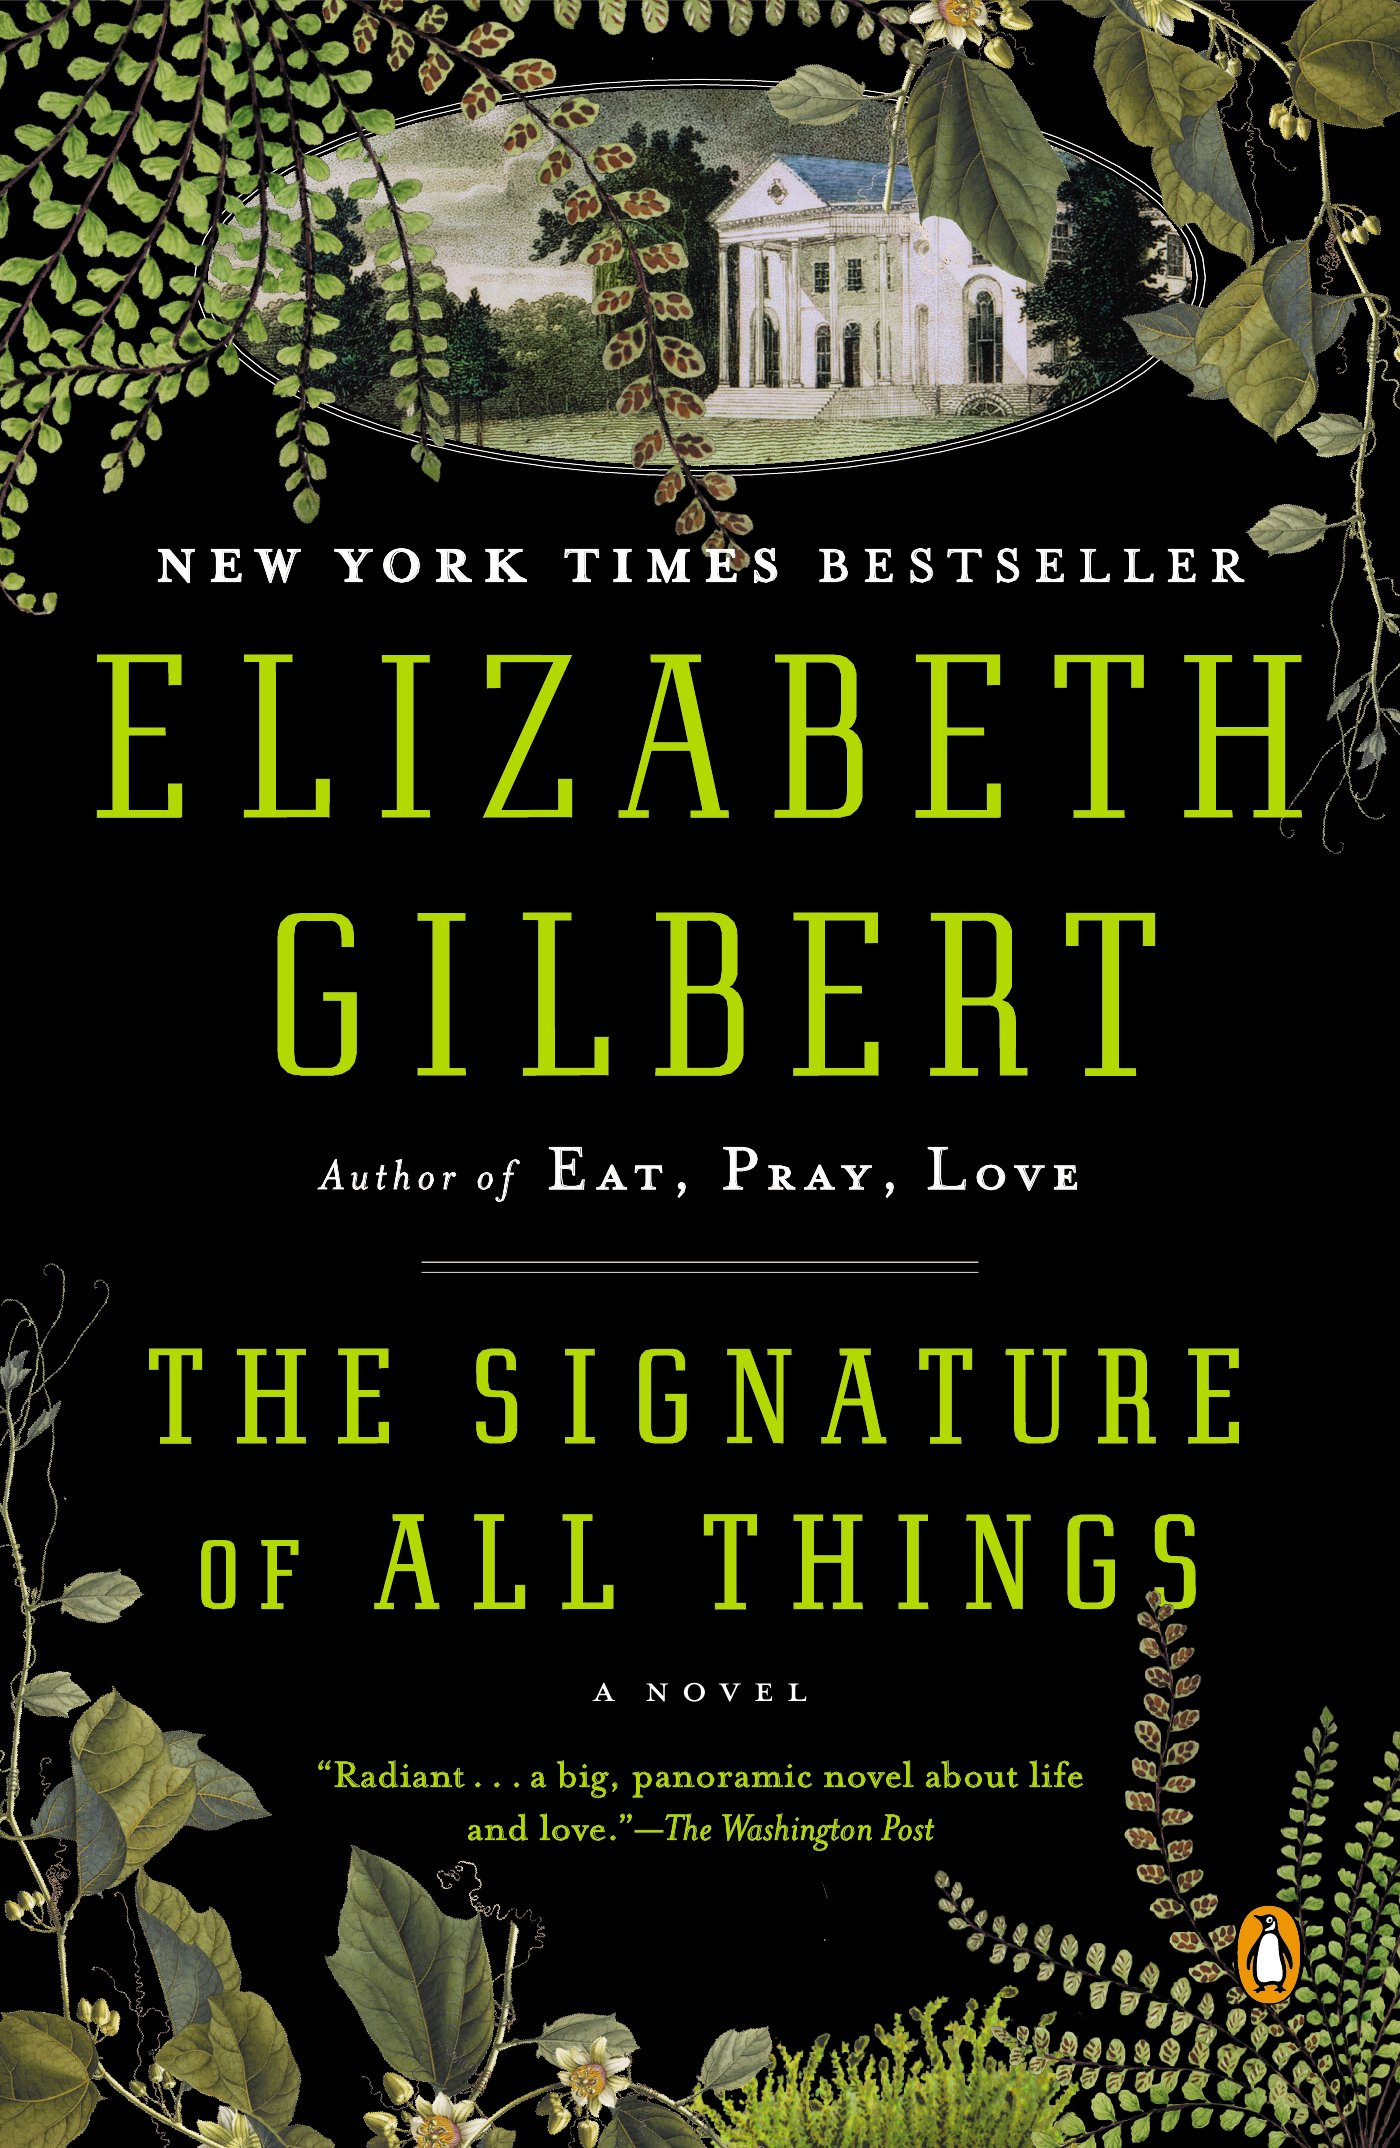 TheWoodlands_ElizabethGilbert_Signature-of-all-Things